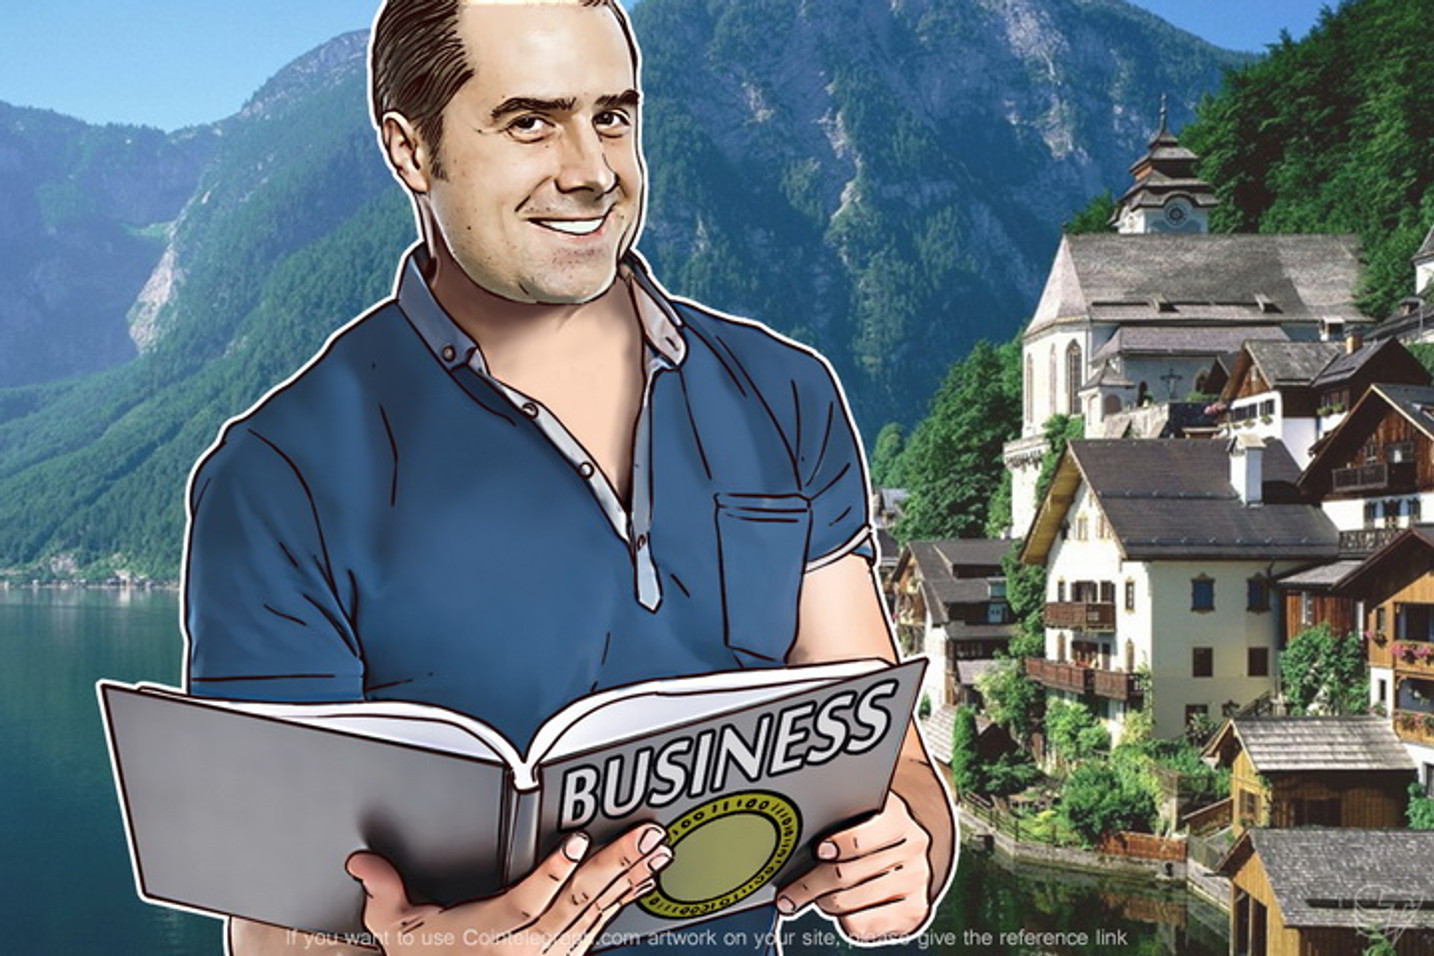 BTM Operator: Bitcoin Is Used in Business, not Just Store of Value